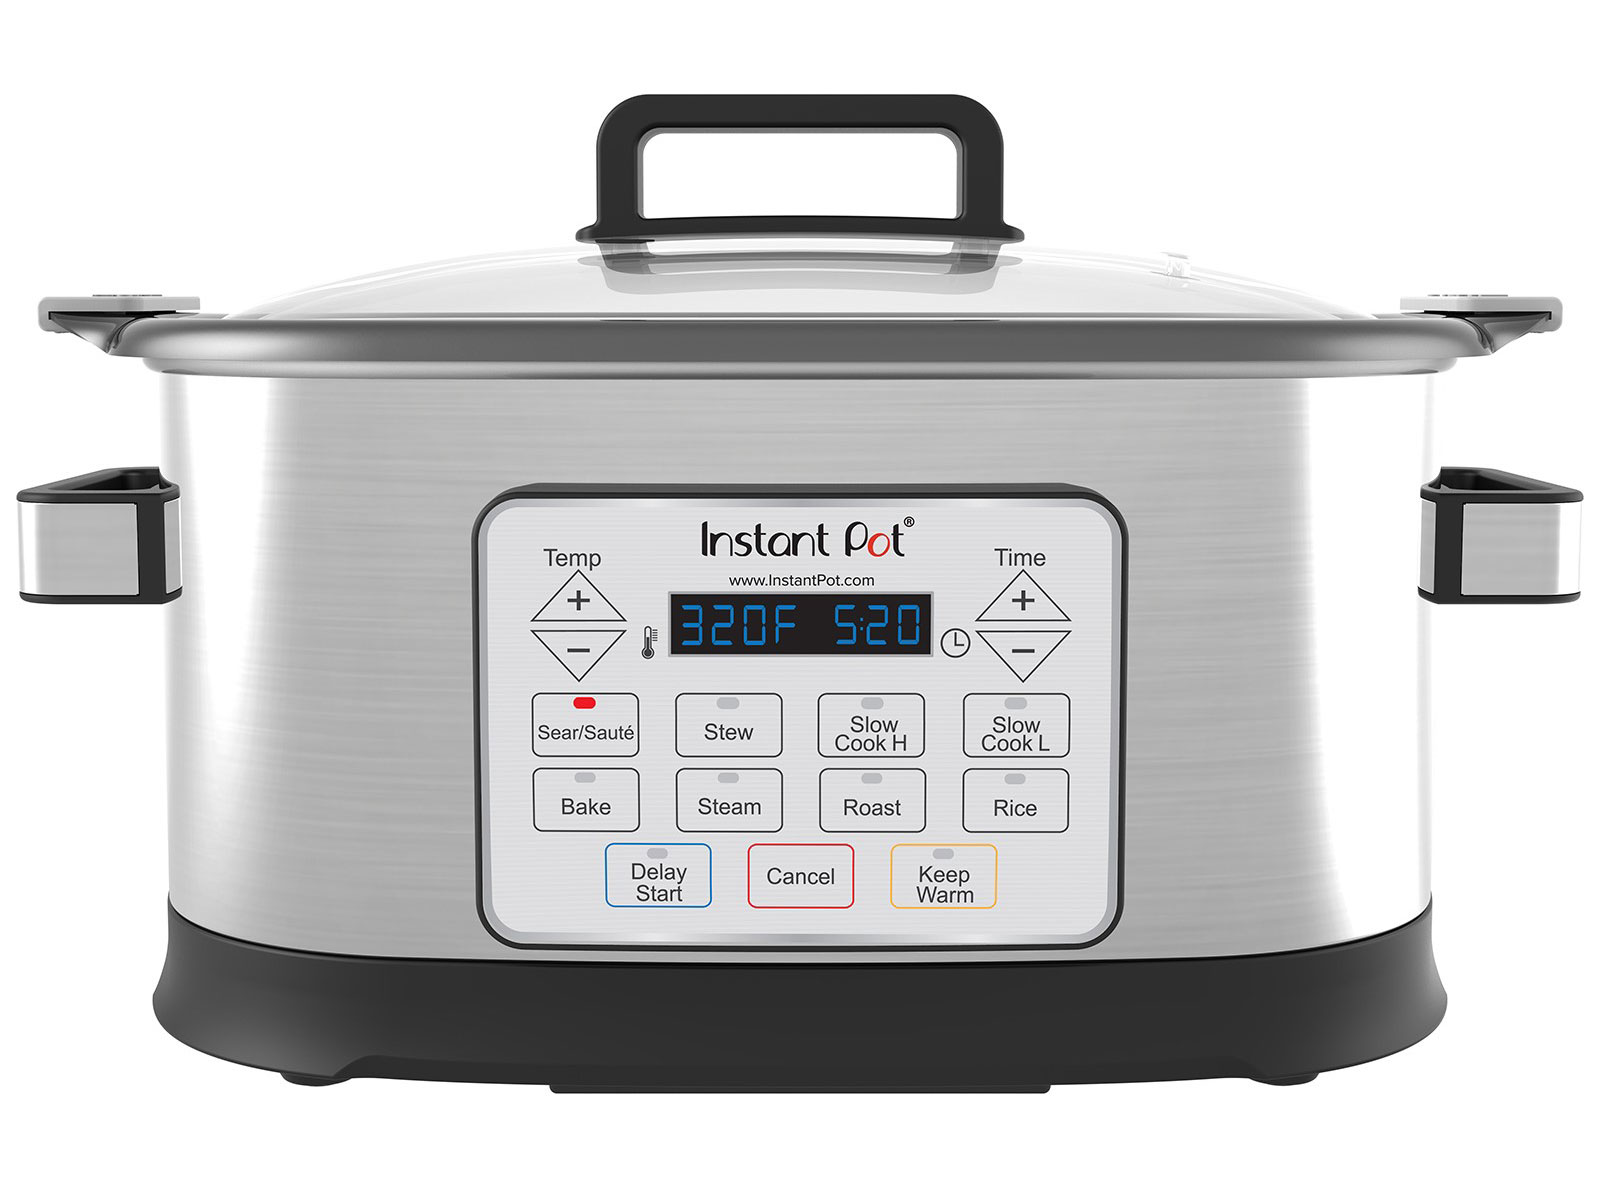 Instant Pot\'s Slow Cooker Is Under $60 at Walmart This Week | Food ...